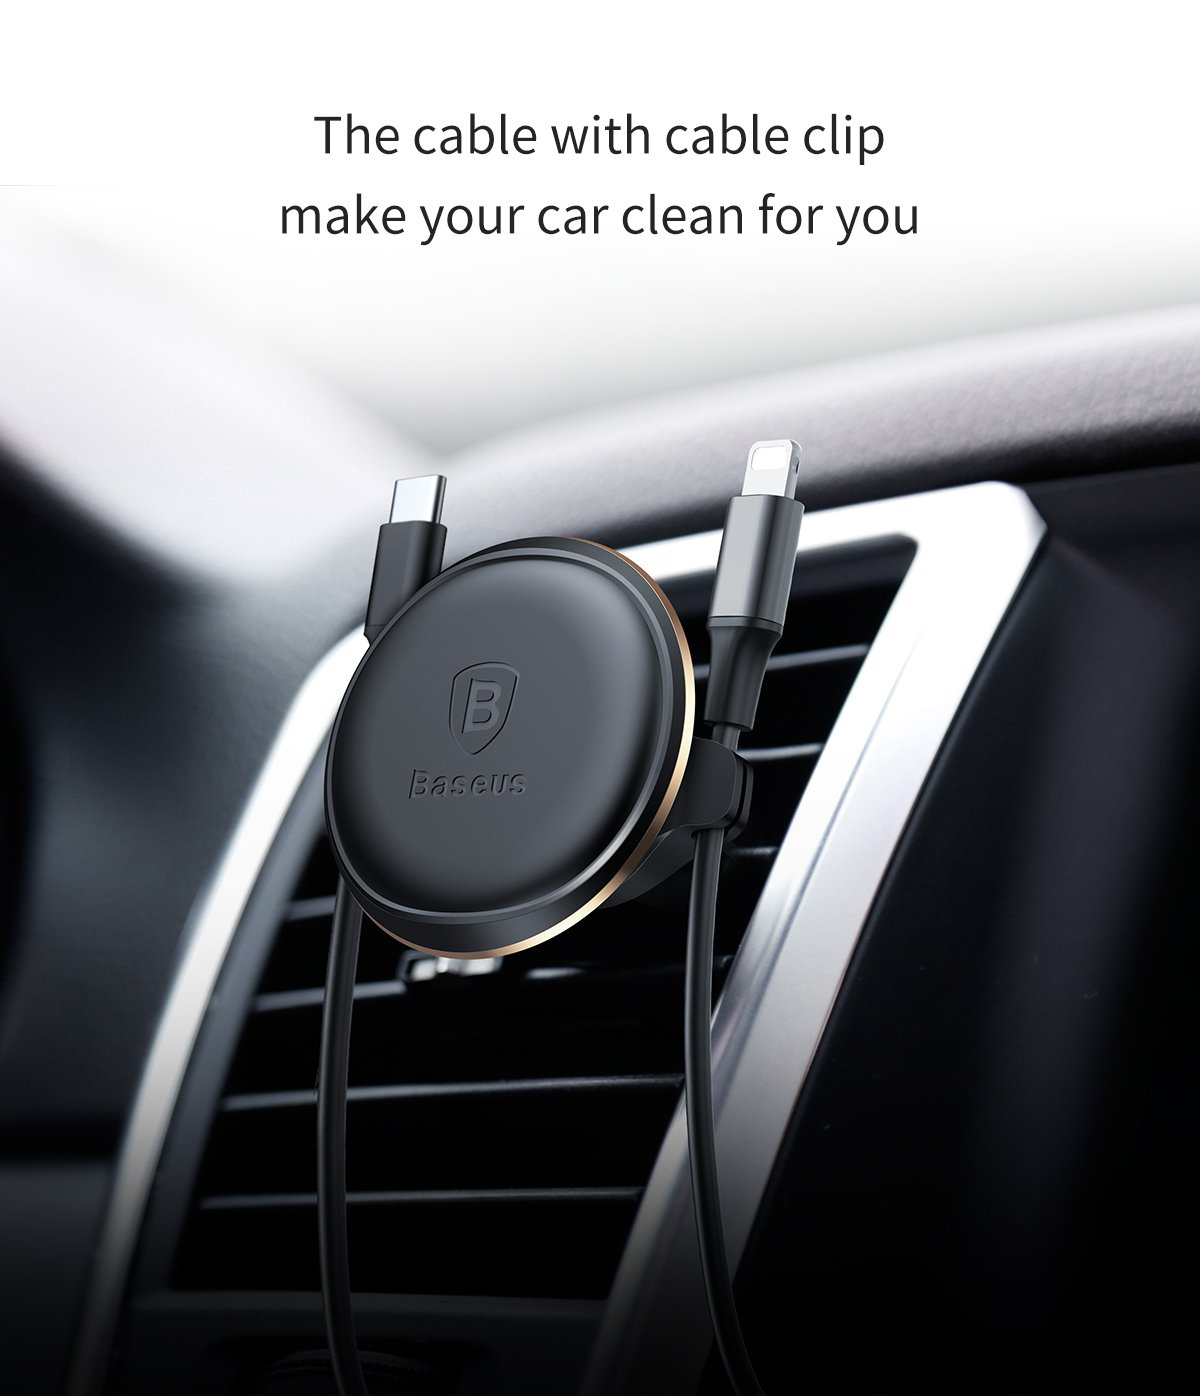 Free Metal Plate Wire Holder Cable Clip for Cell Phones from 4-6.0 4336707706 Air Vent Phone Holder,Baseus Universal Car Air Vent Megnetic Suction Bracket Mount Stand /&